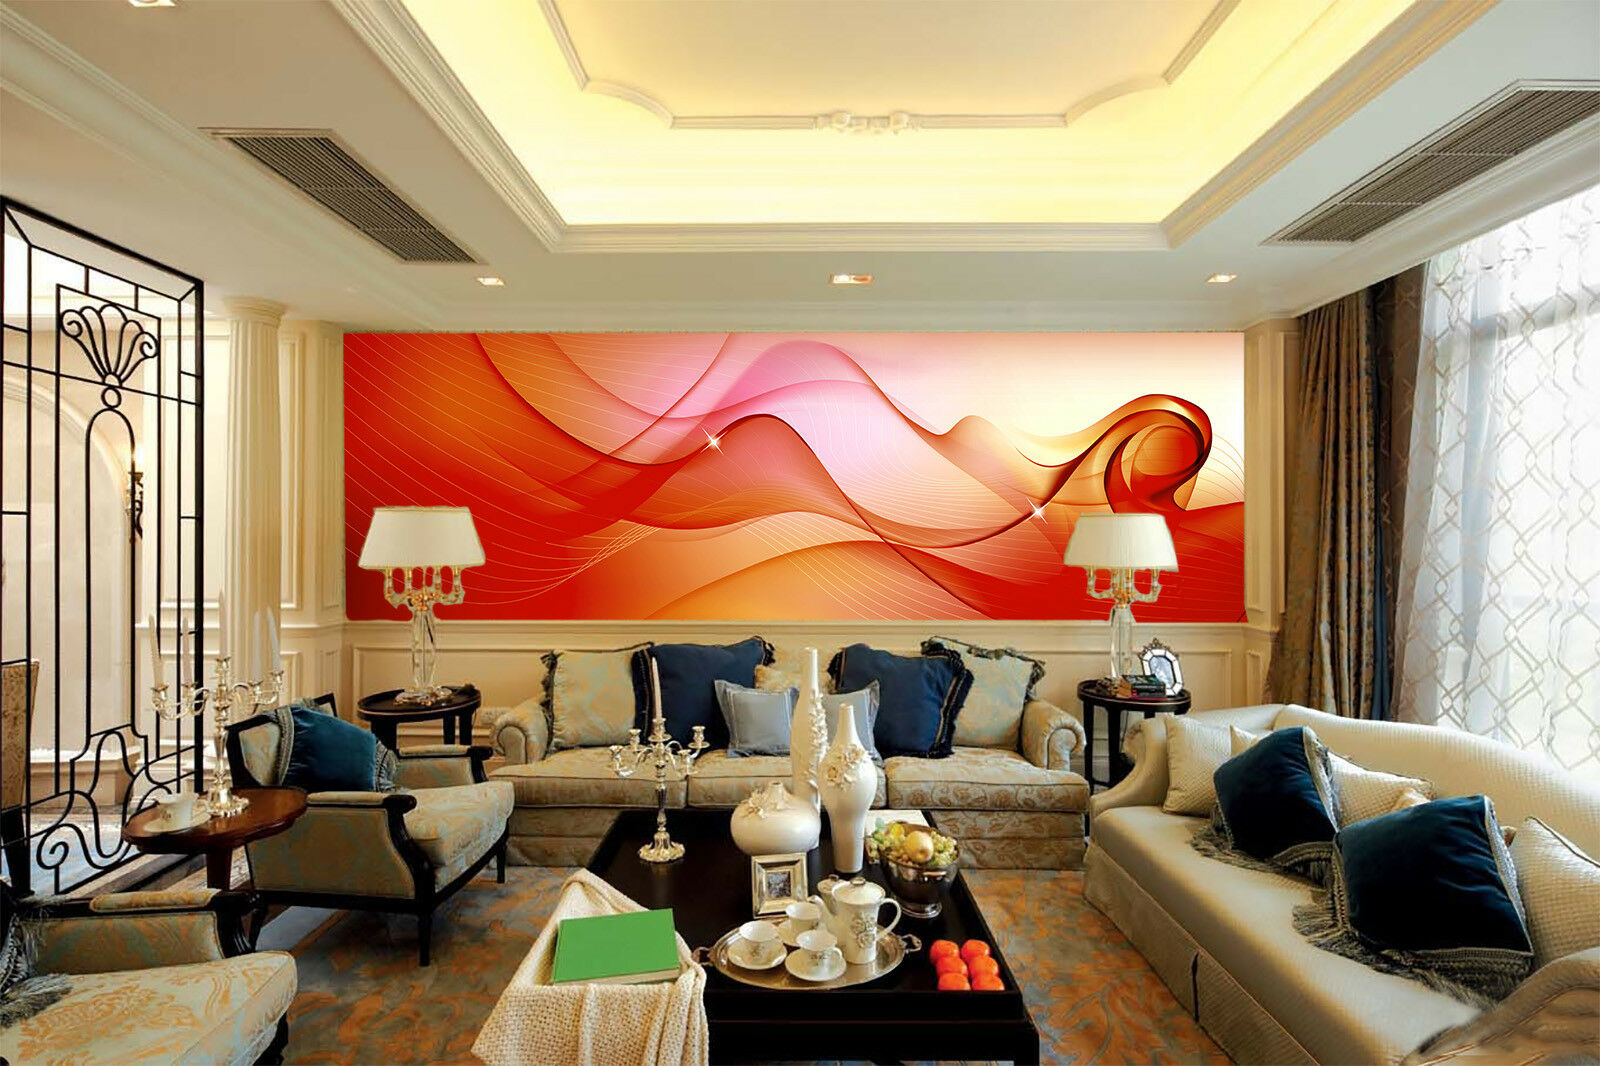 3d Floating Abstract 74 wandpaper Mural wandpaper wandpaper Picture Family De Summer